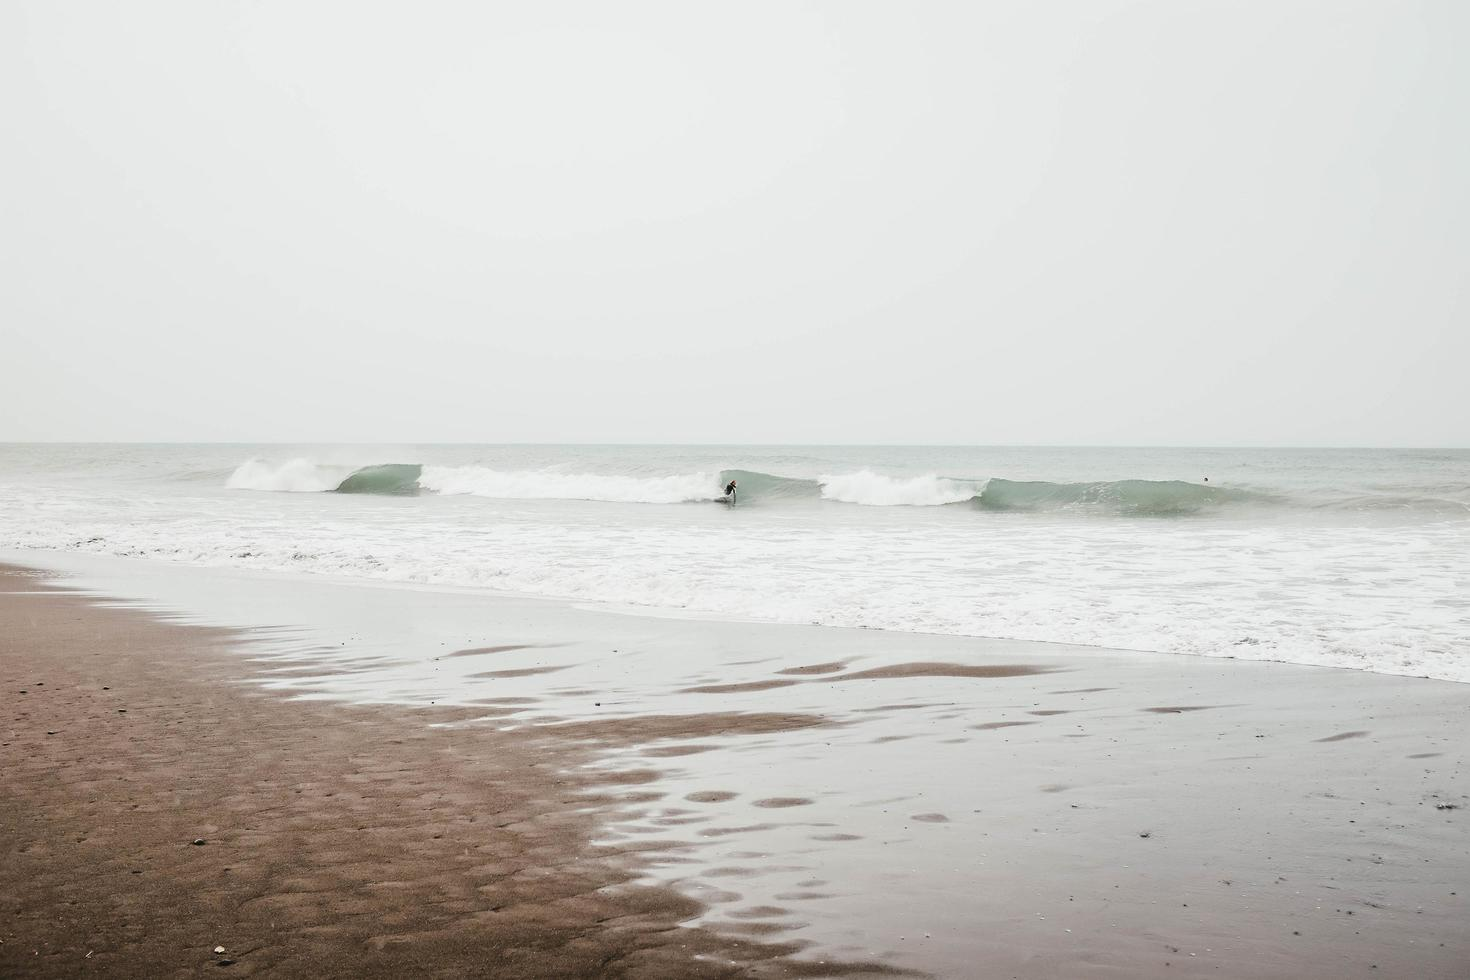 Person surfing on waves photo